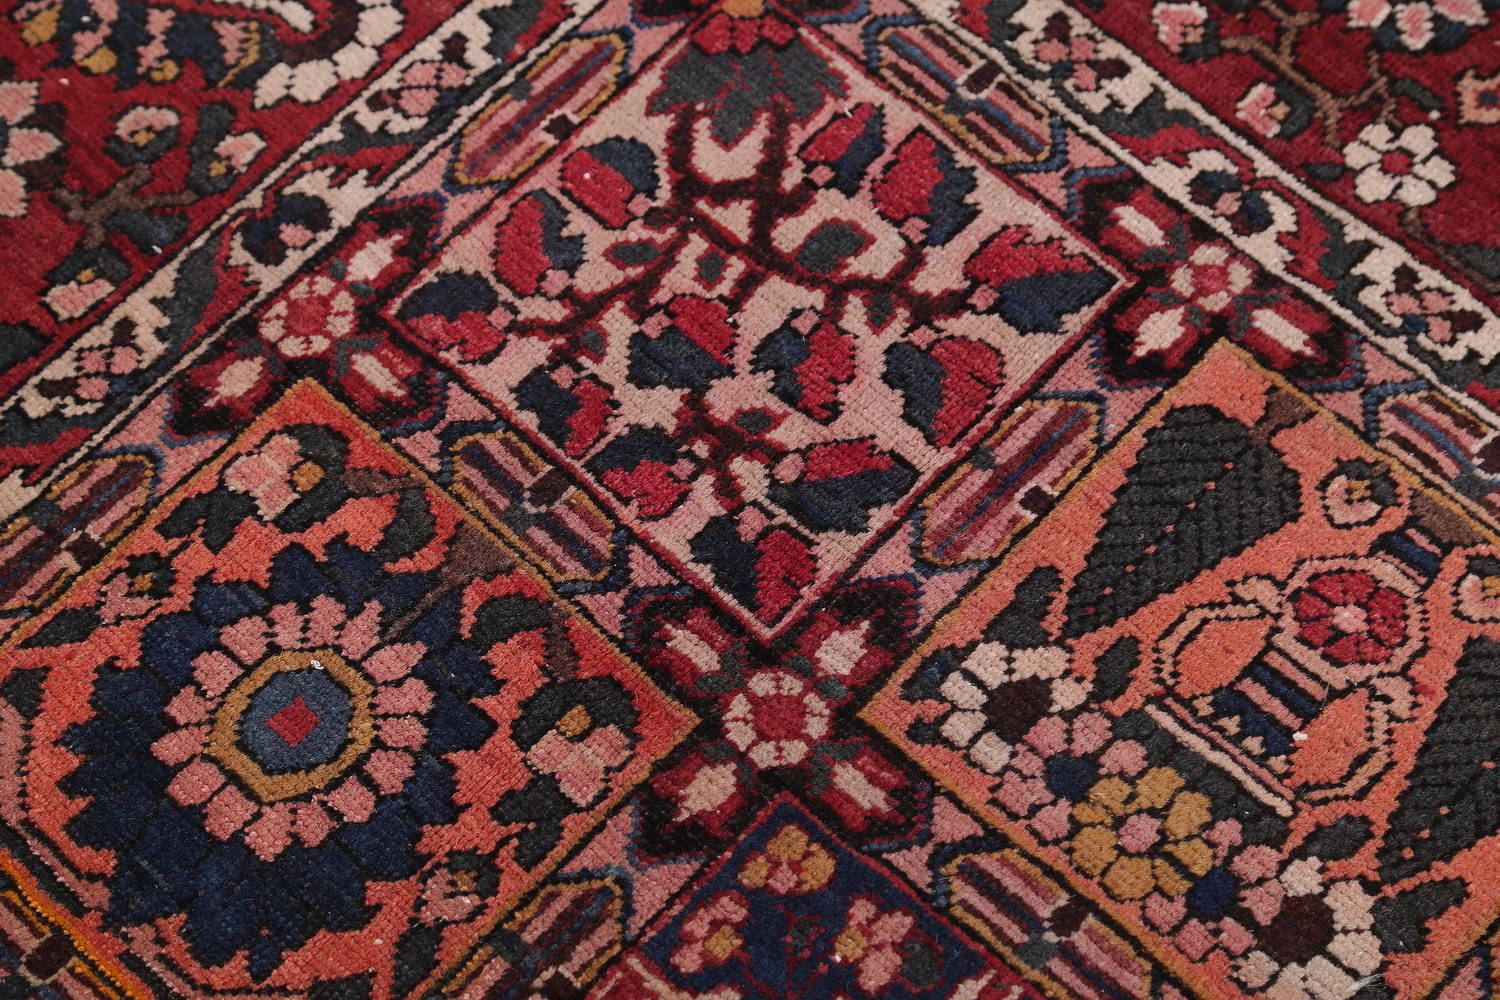 Floral Red Bakhtiari Persian Hand-Knotted Area Rug Wool 7x10